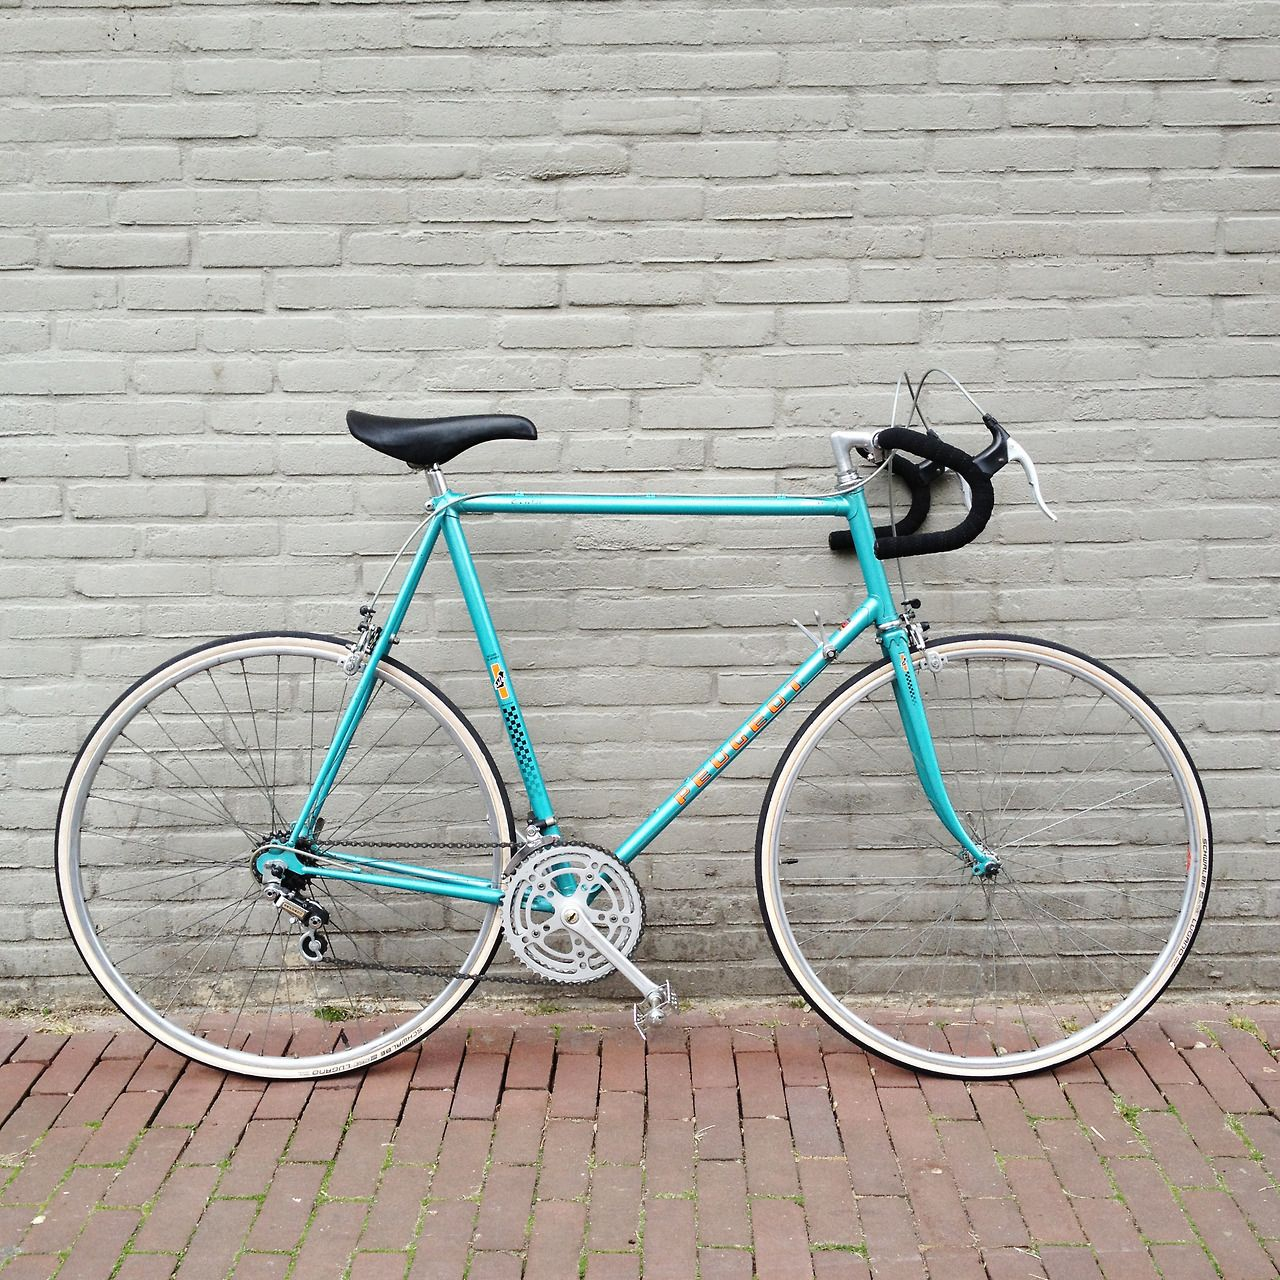 Peugeot Pbn10 64cm With A Nice Vintage San Marco Concor Leather Saddle Bike Details Beautiful Bike Bicycle